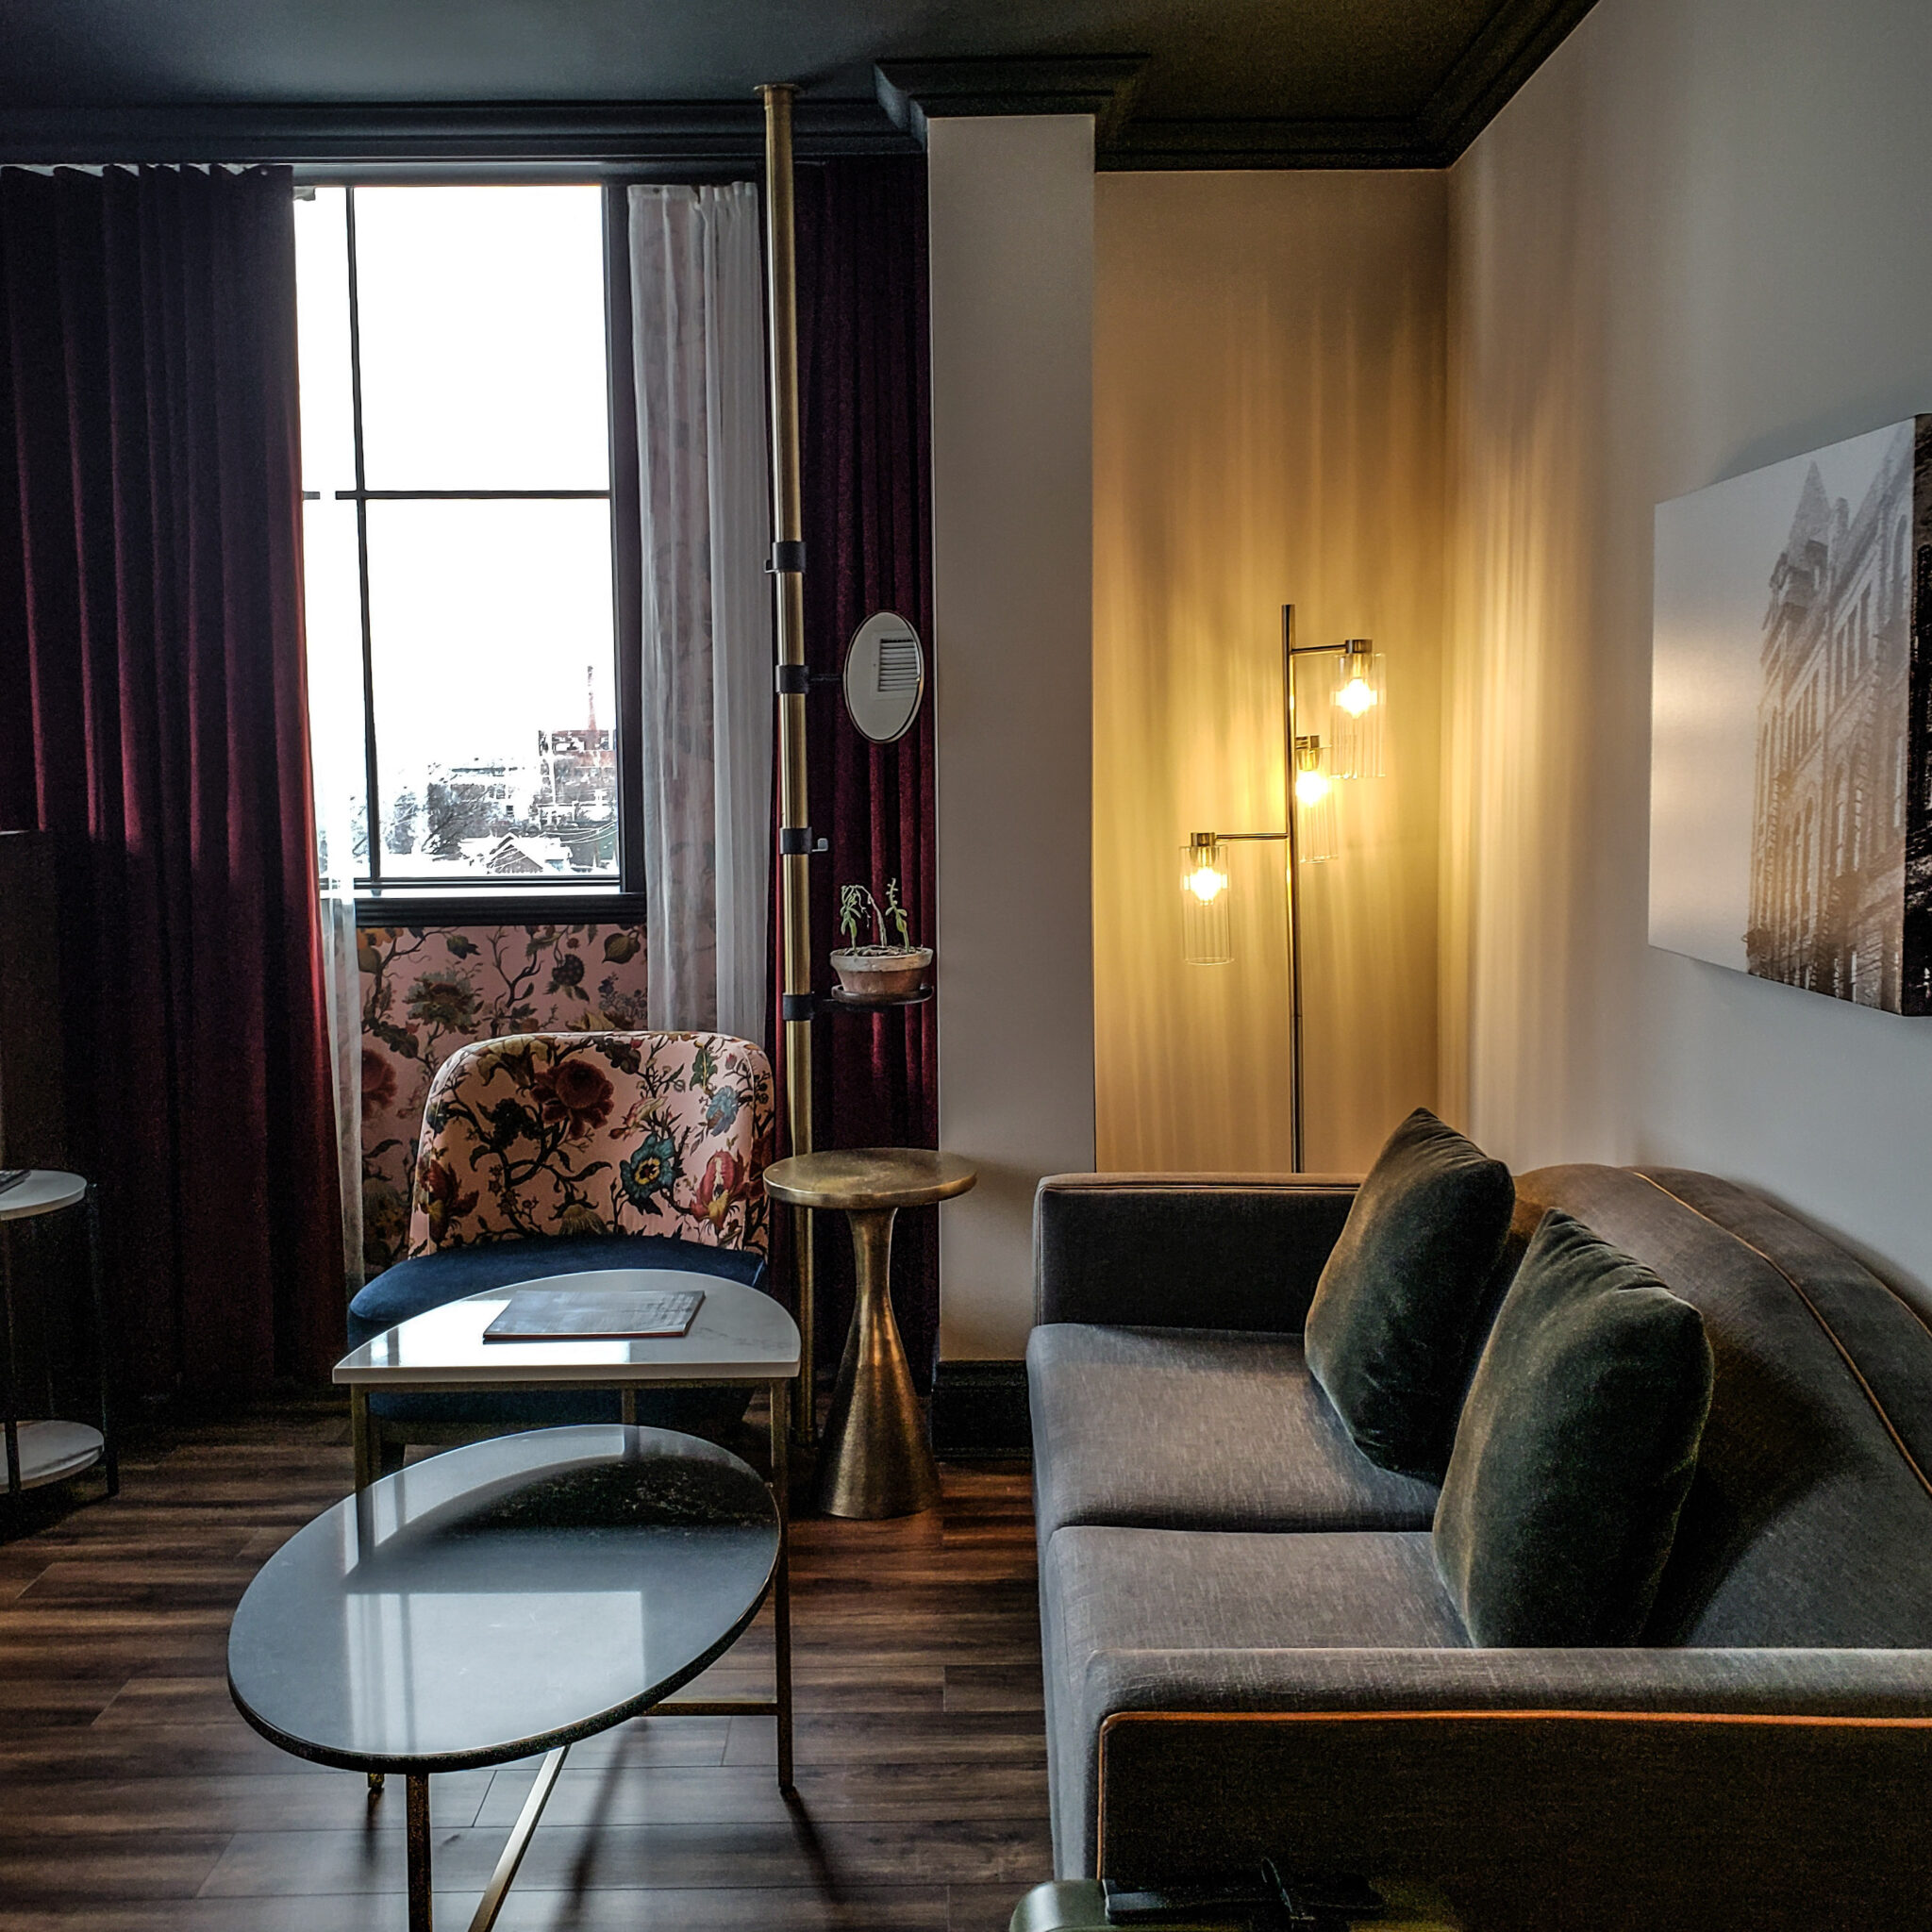 The Broadview Hotel - Broadview Hotel - Queen East - Toronto East - Toronto Life - Boutique Hotel - Suite